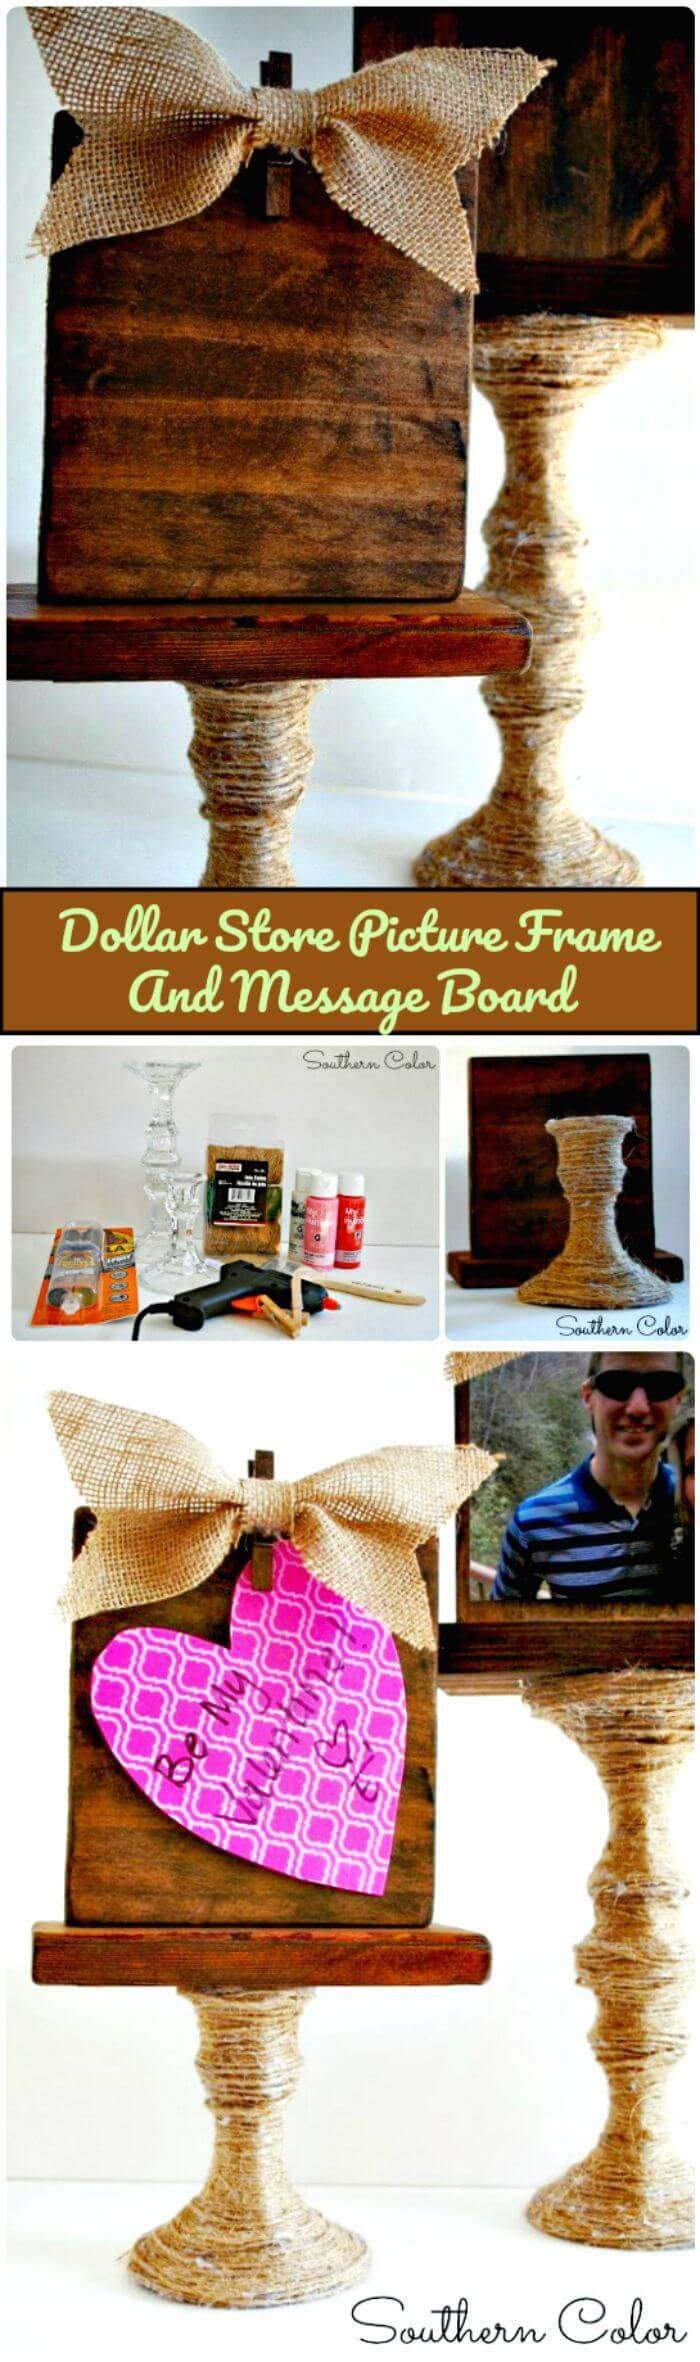 Dollar Store Picture Frame And Message Board